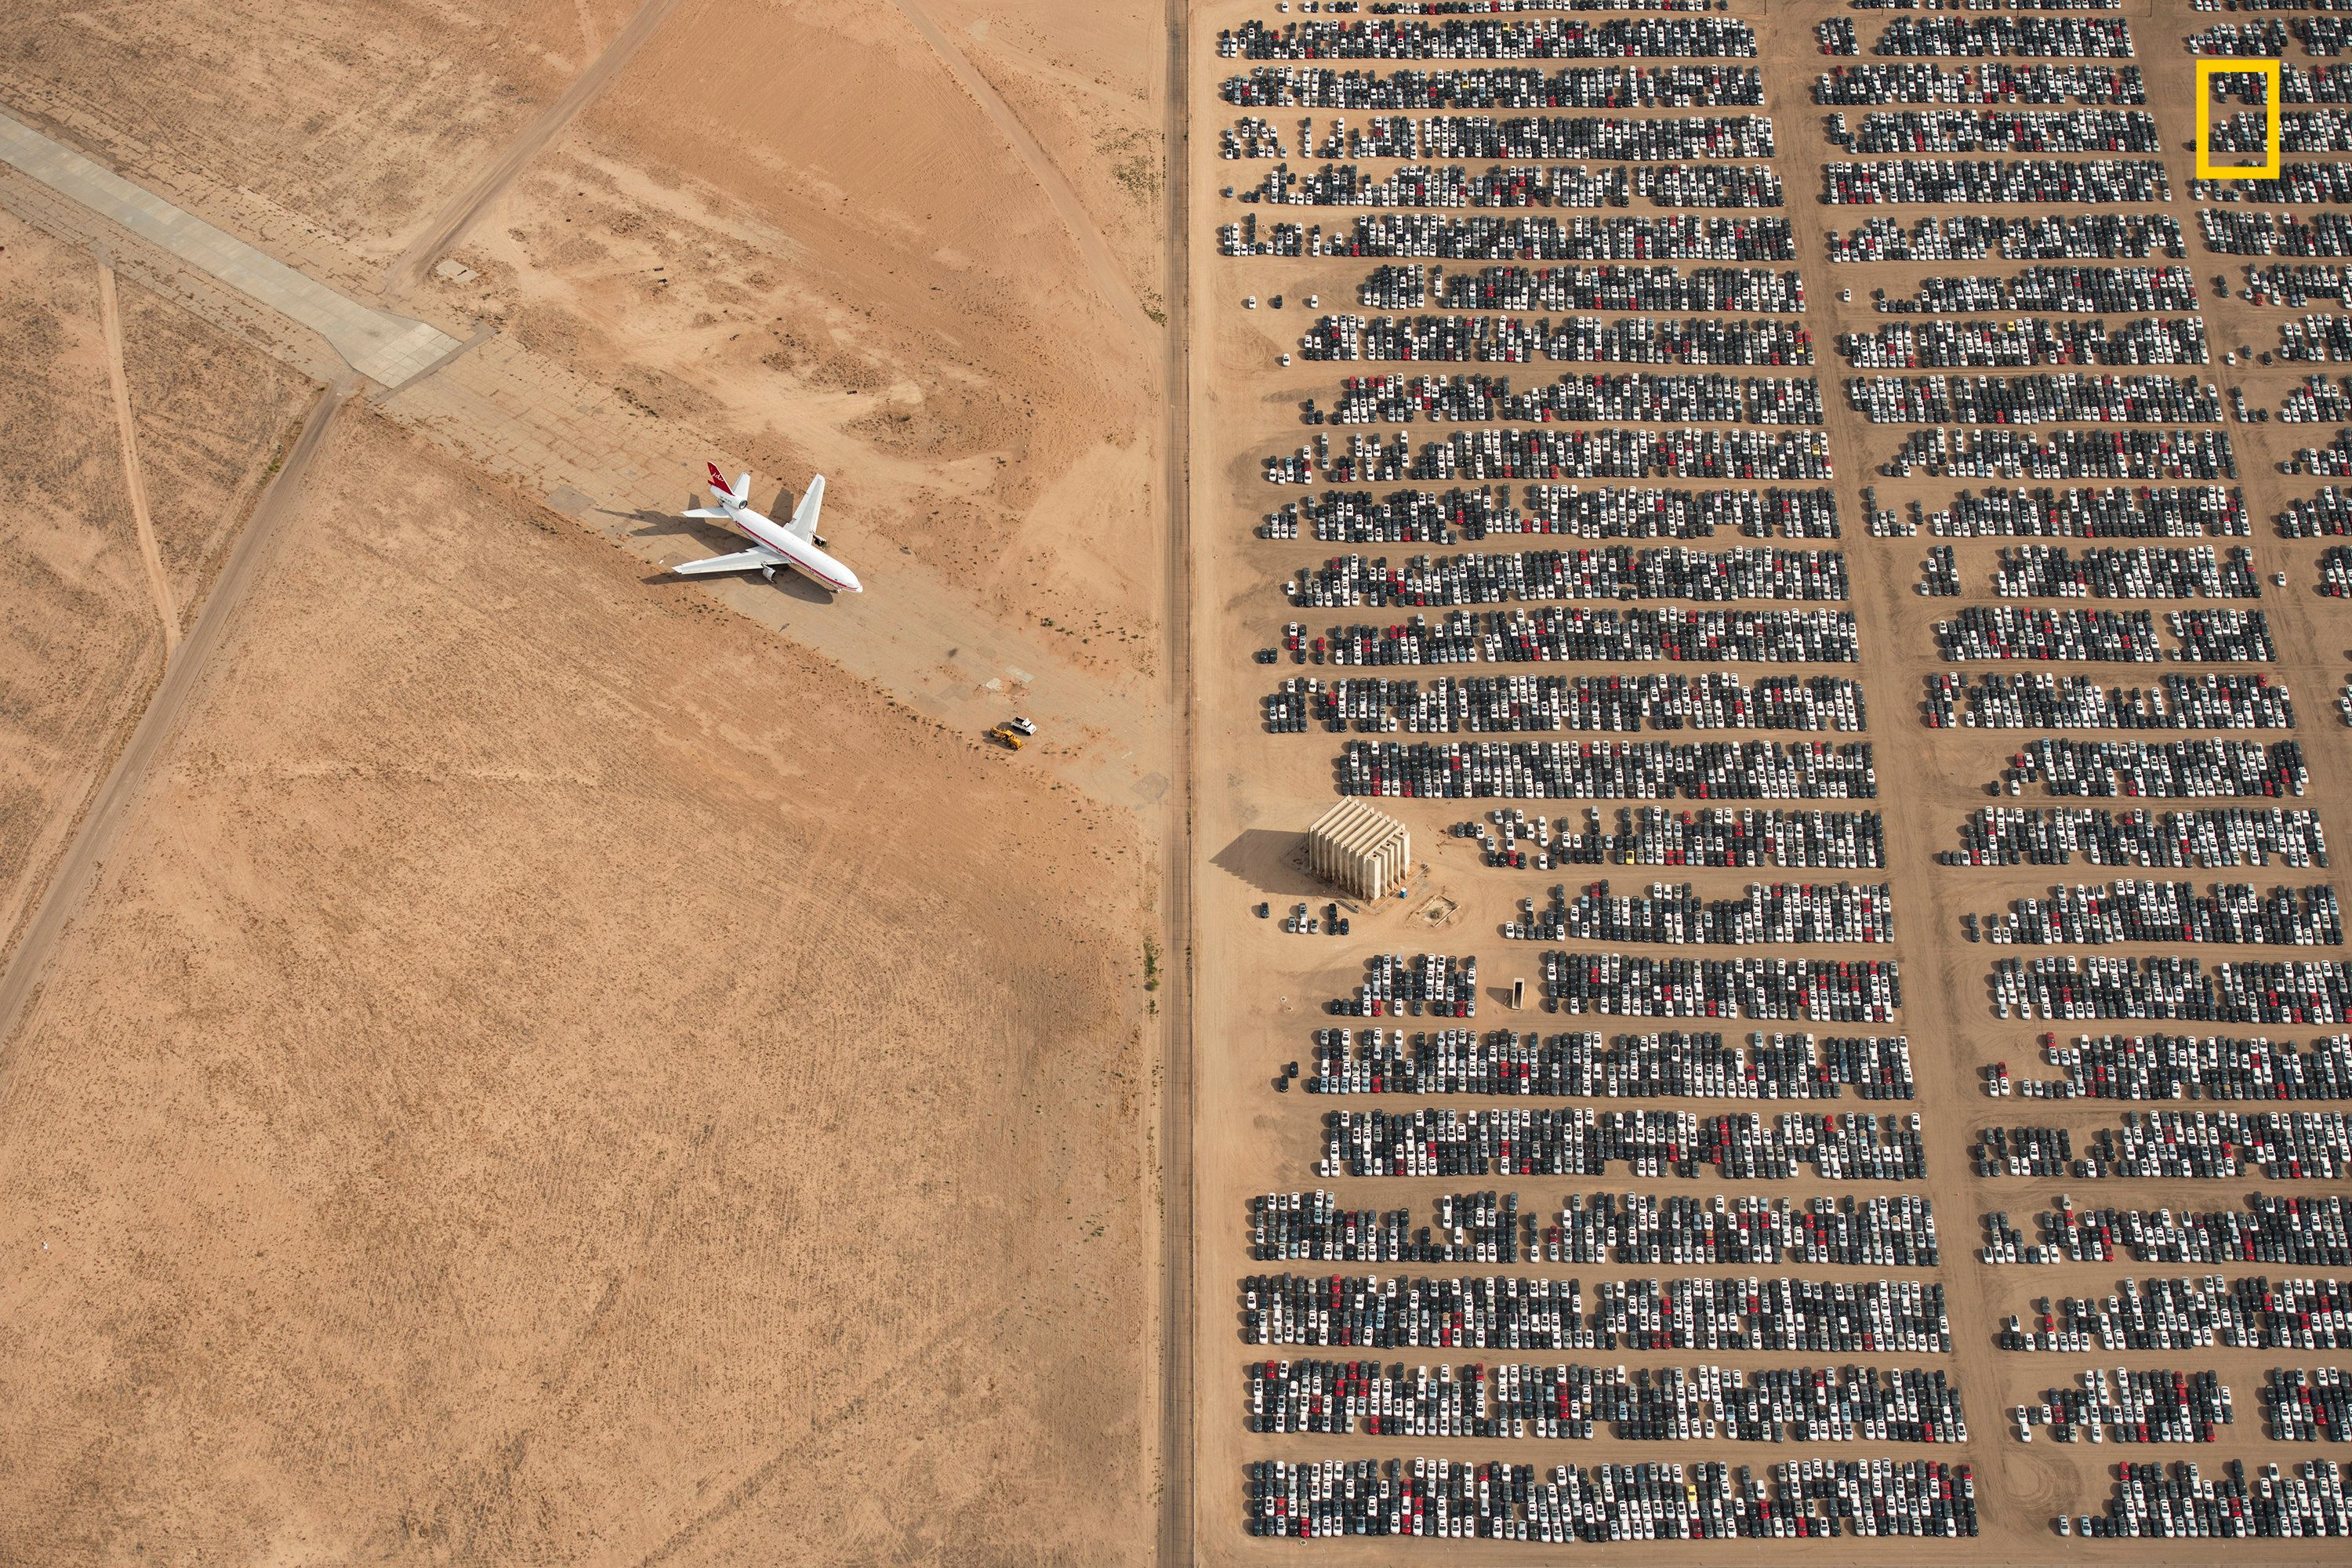 Grand Prize Winner - Thousands of Volkswagen and Audi cars sit idle in the middle of California's Mojave Desert. Models manufactured from 2009 to 2015 were designed to cheat emissions tests mandated by the U.S. Environmental Protection Agency. Following the scandal, Volkswagen recalled millions of cars. By capturing scenes like this one, I hope we will all become more conscious of and more caring toward our beautiful planet.